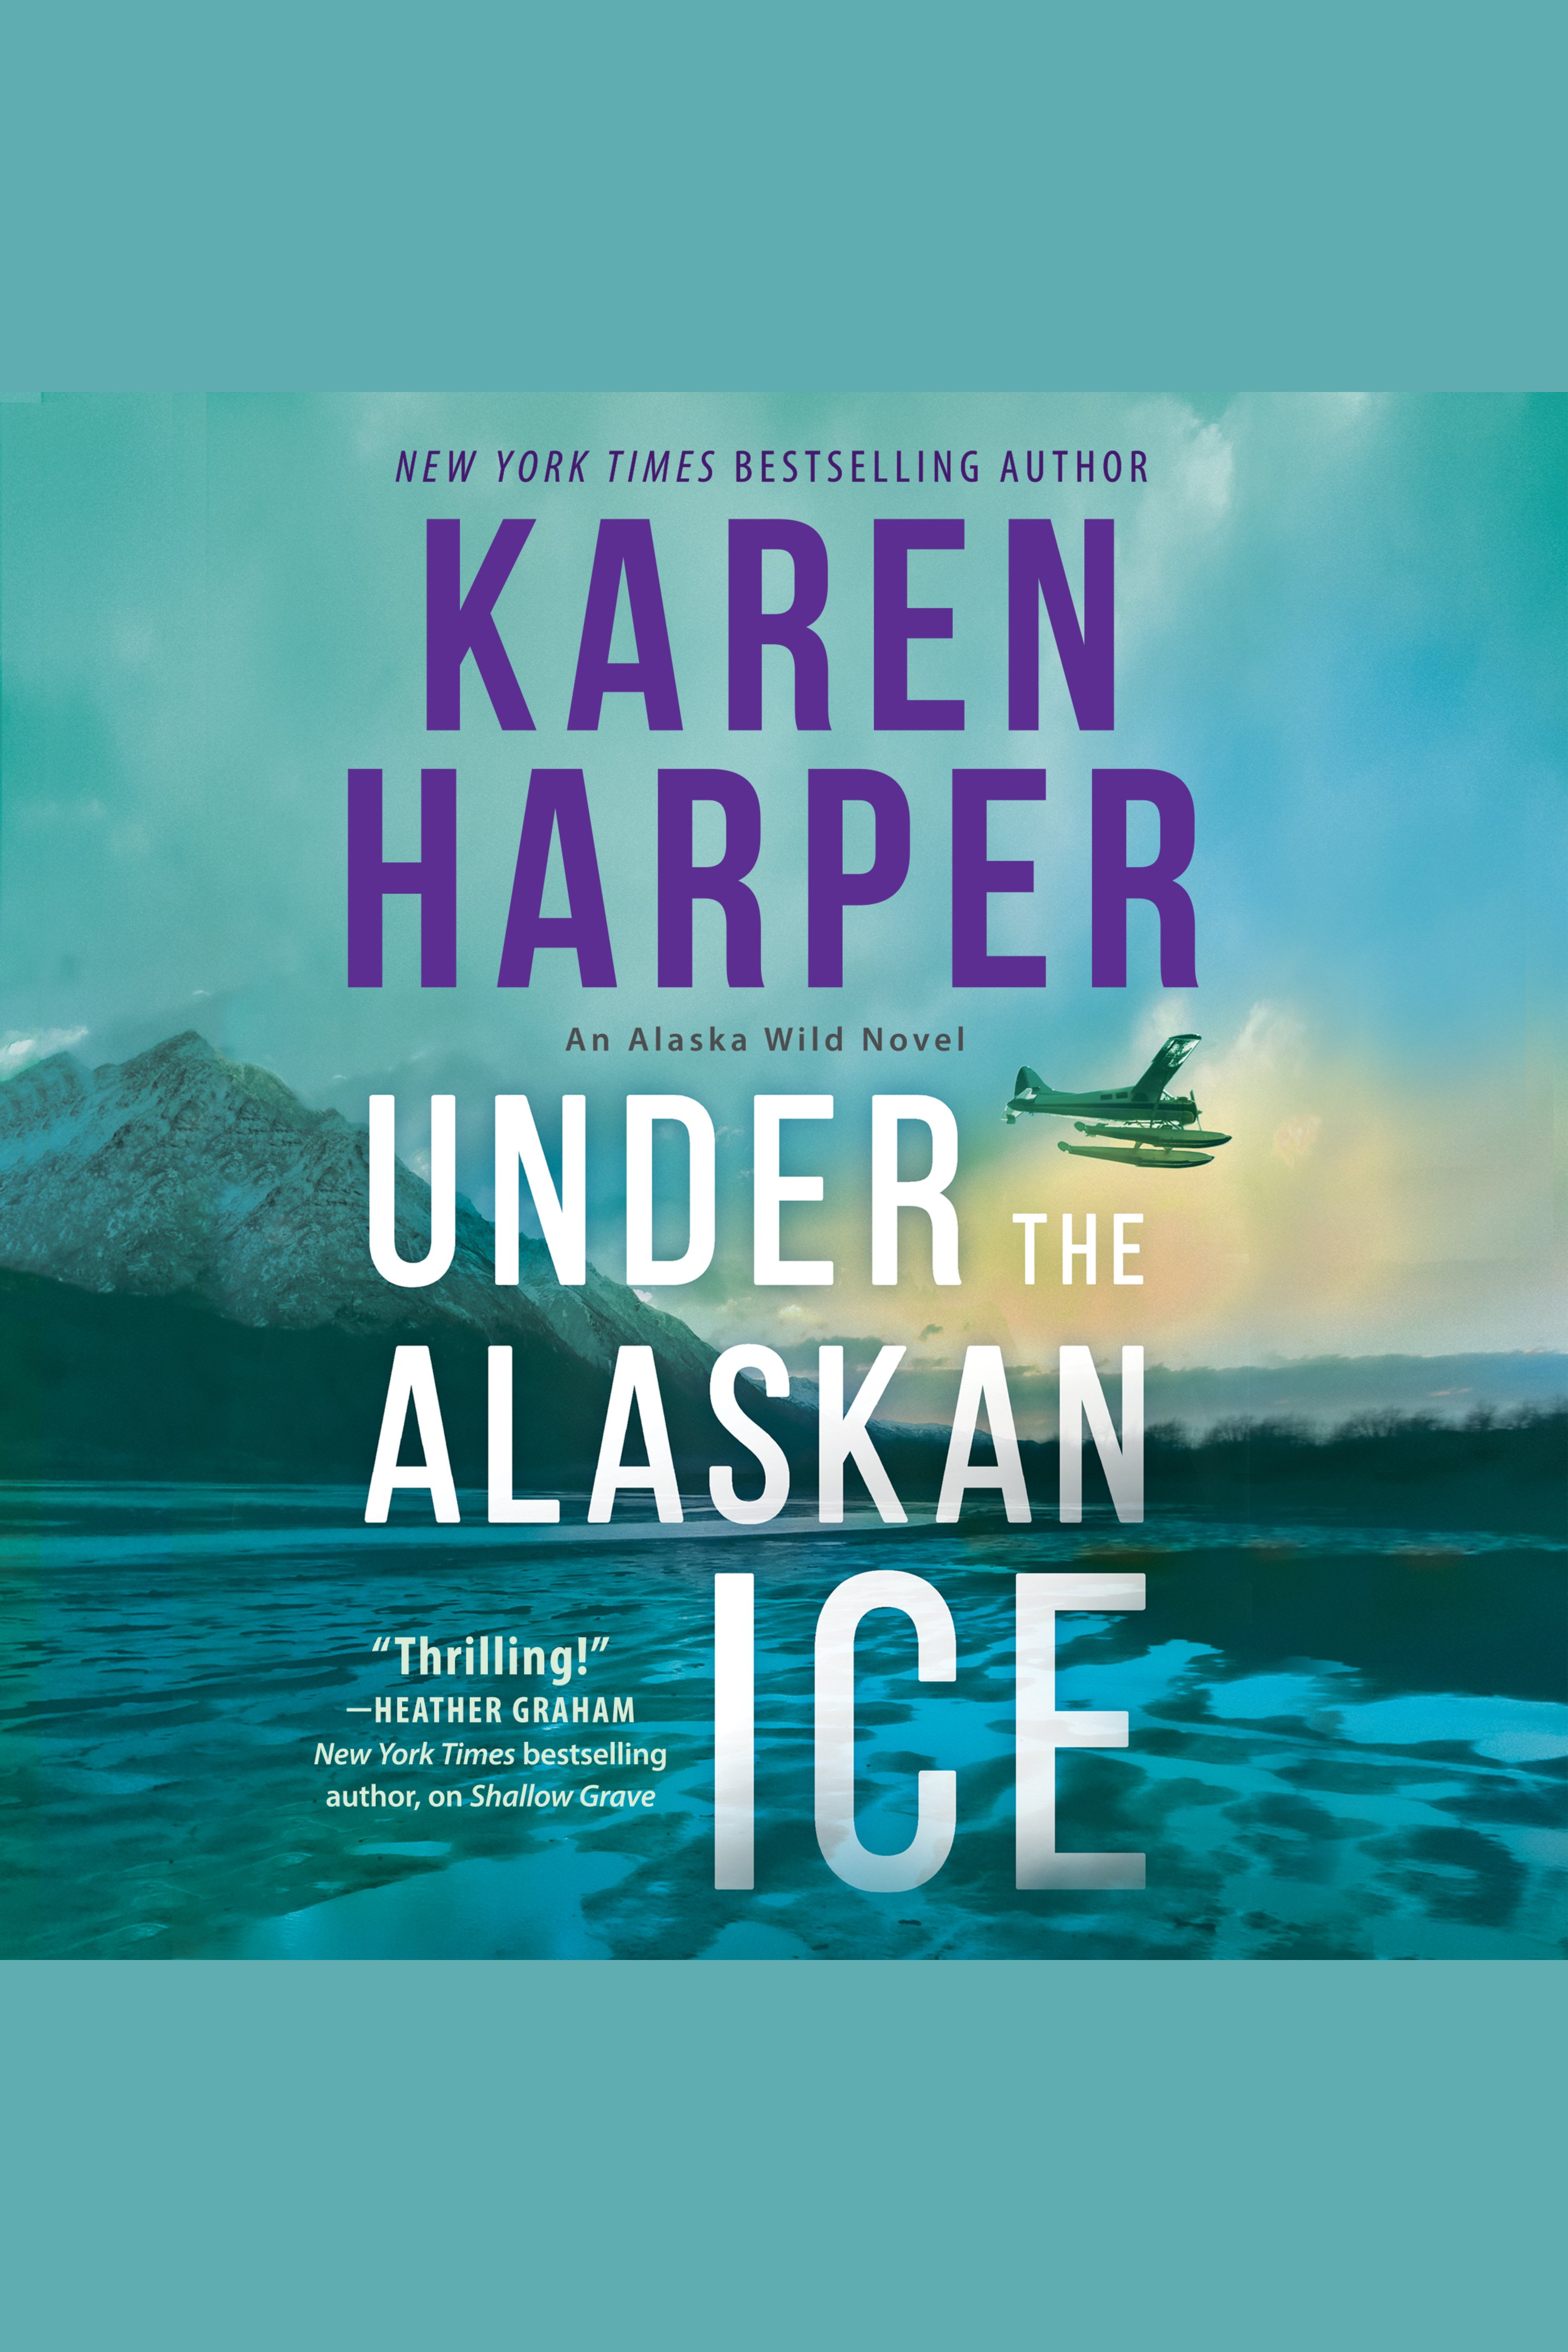 Cover Image of Under the Alaskan Ice